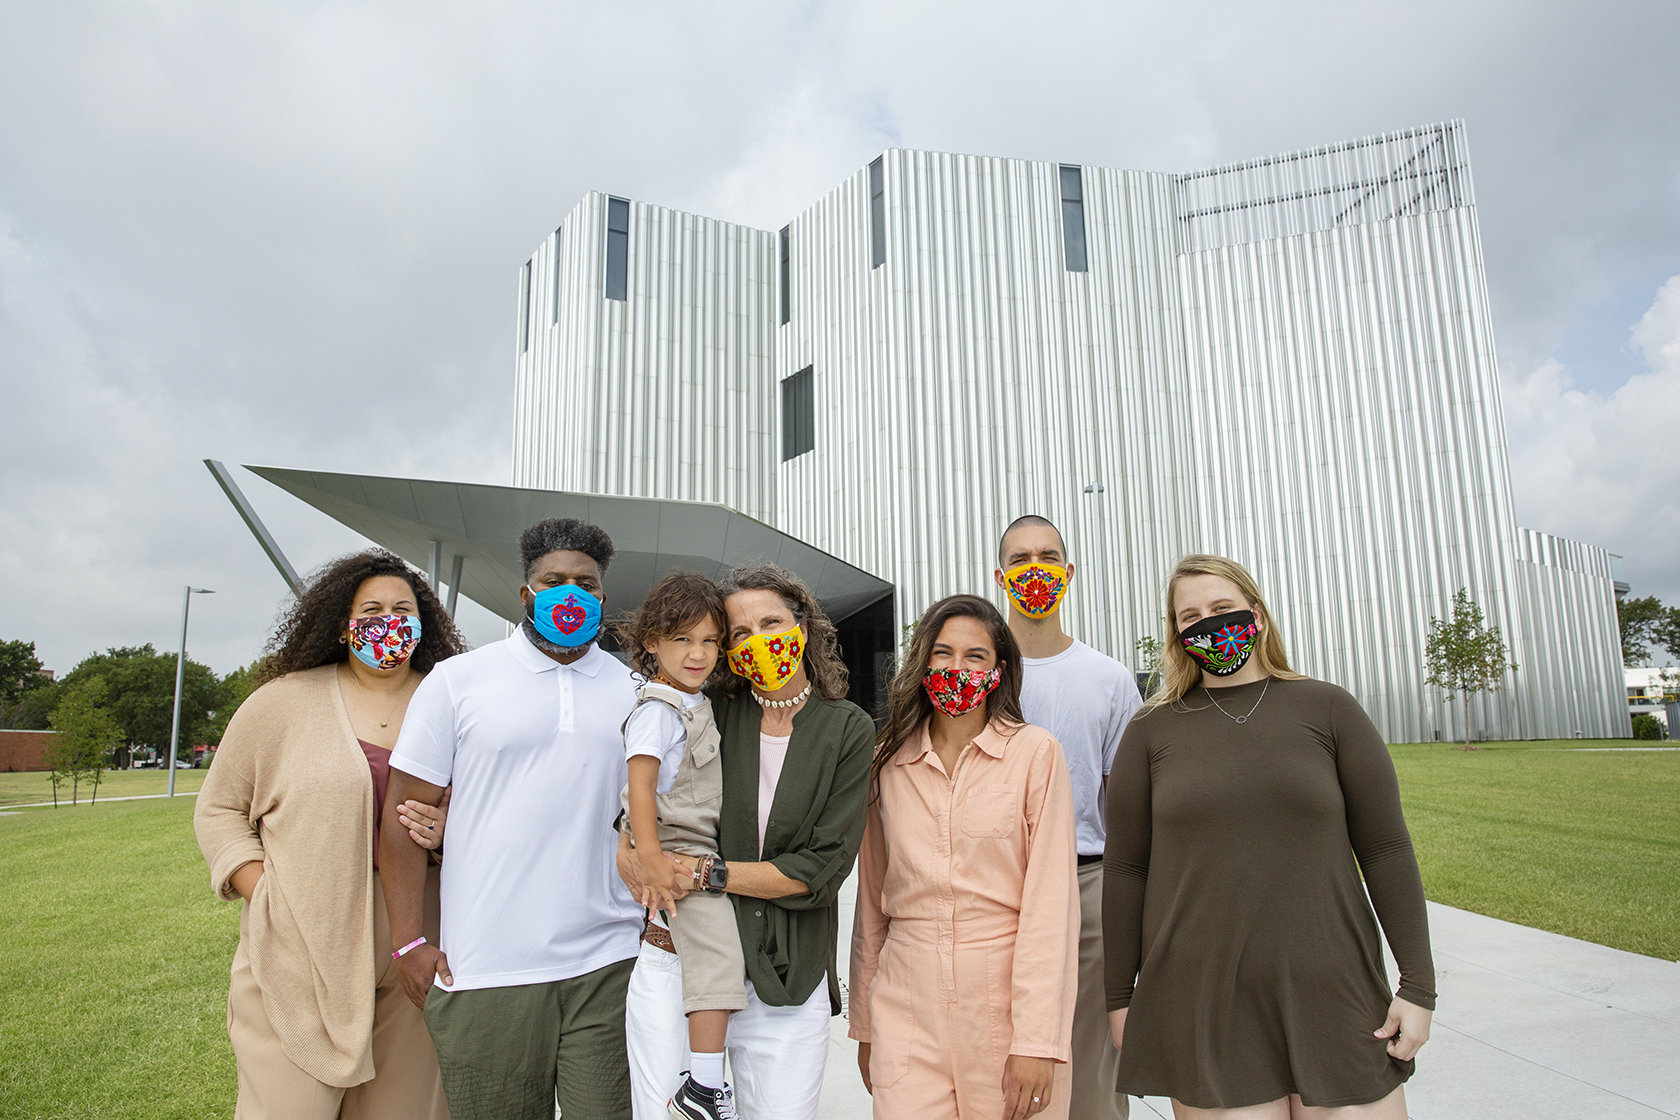 A masked family poses for a group photo in front of a contemporary metal building.